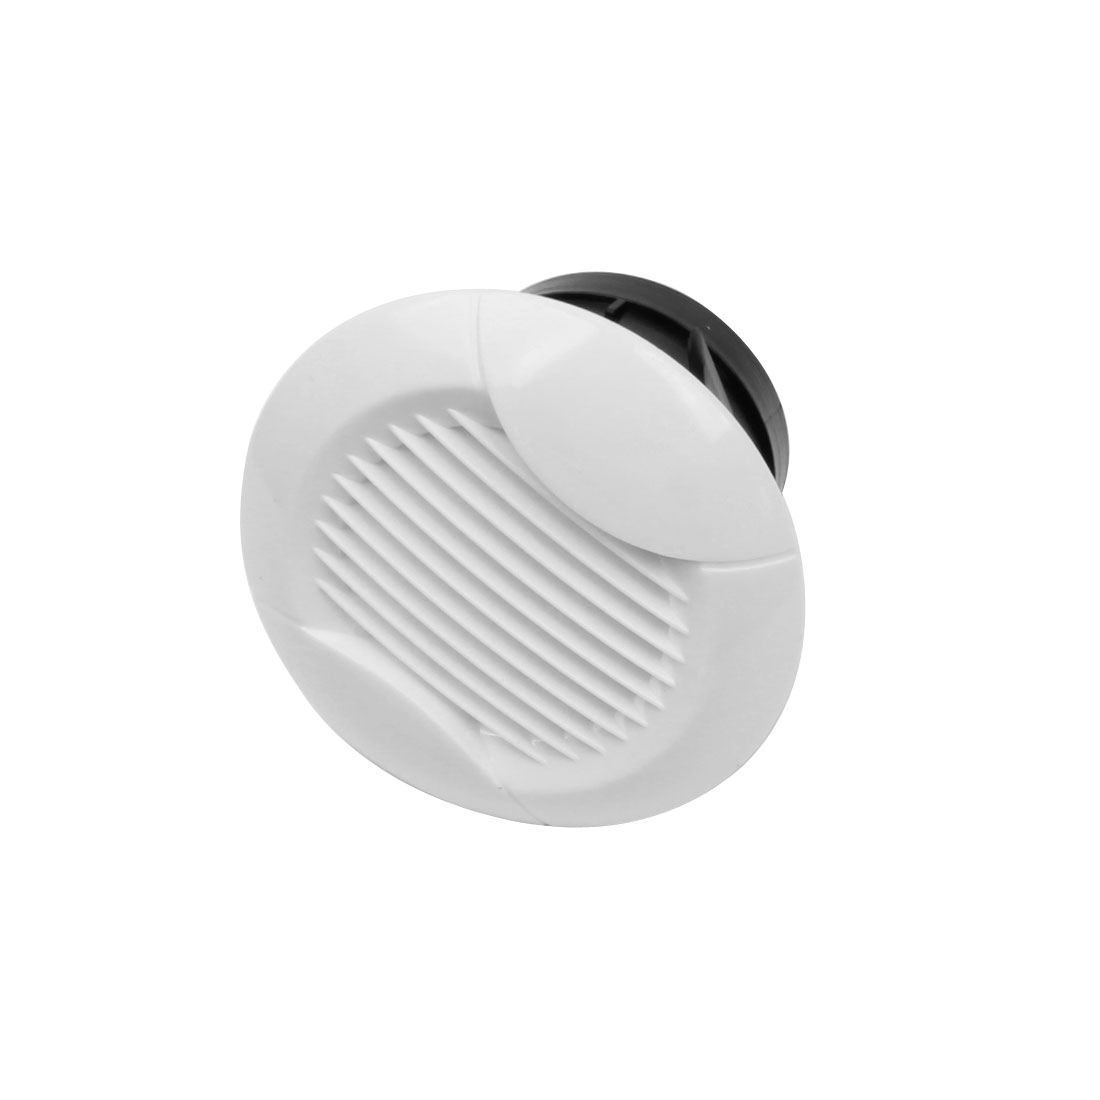 115mm Dia Panel Circle Air Vent Outlet Straight Louver Ventilation Grille Cover Flange for 75mm Round Ducting